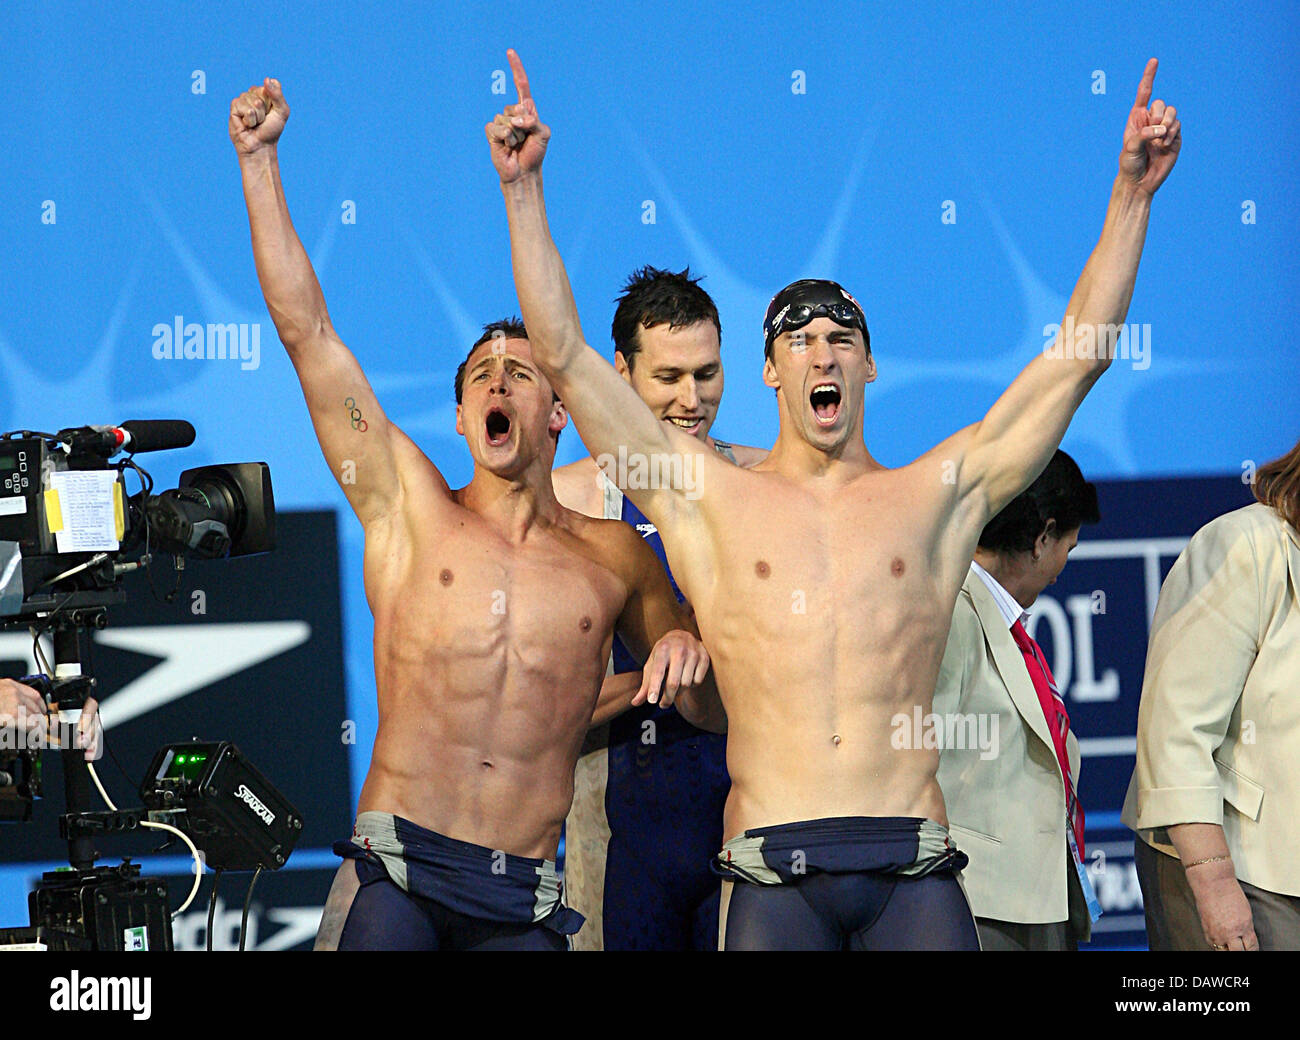 US swimmers (L-R) Ryan Lochte, Michael Phelps and Klete ...